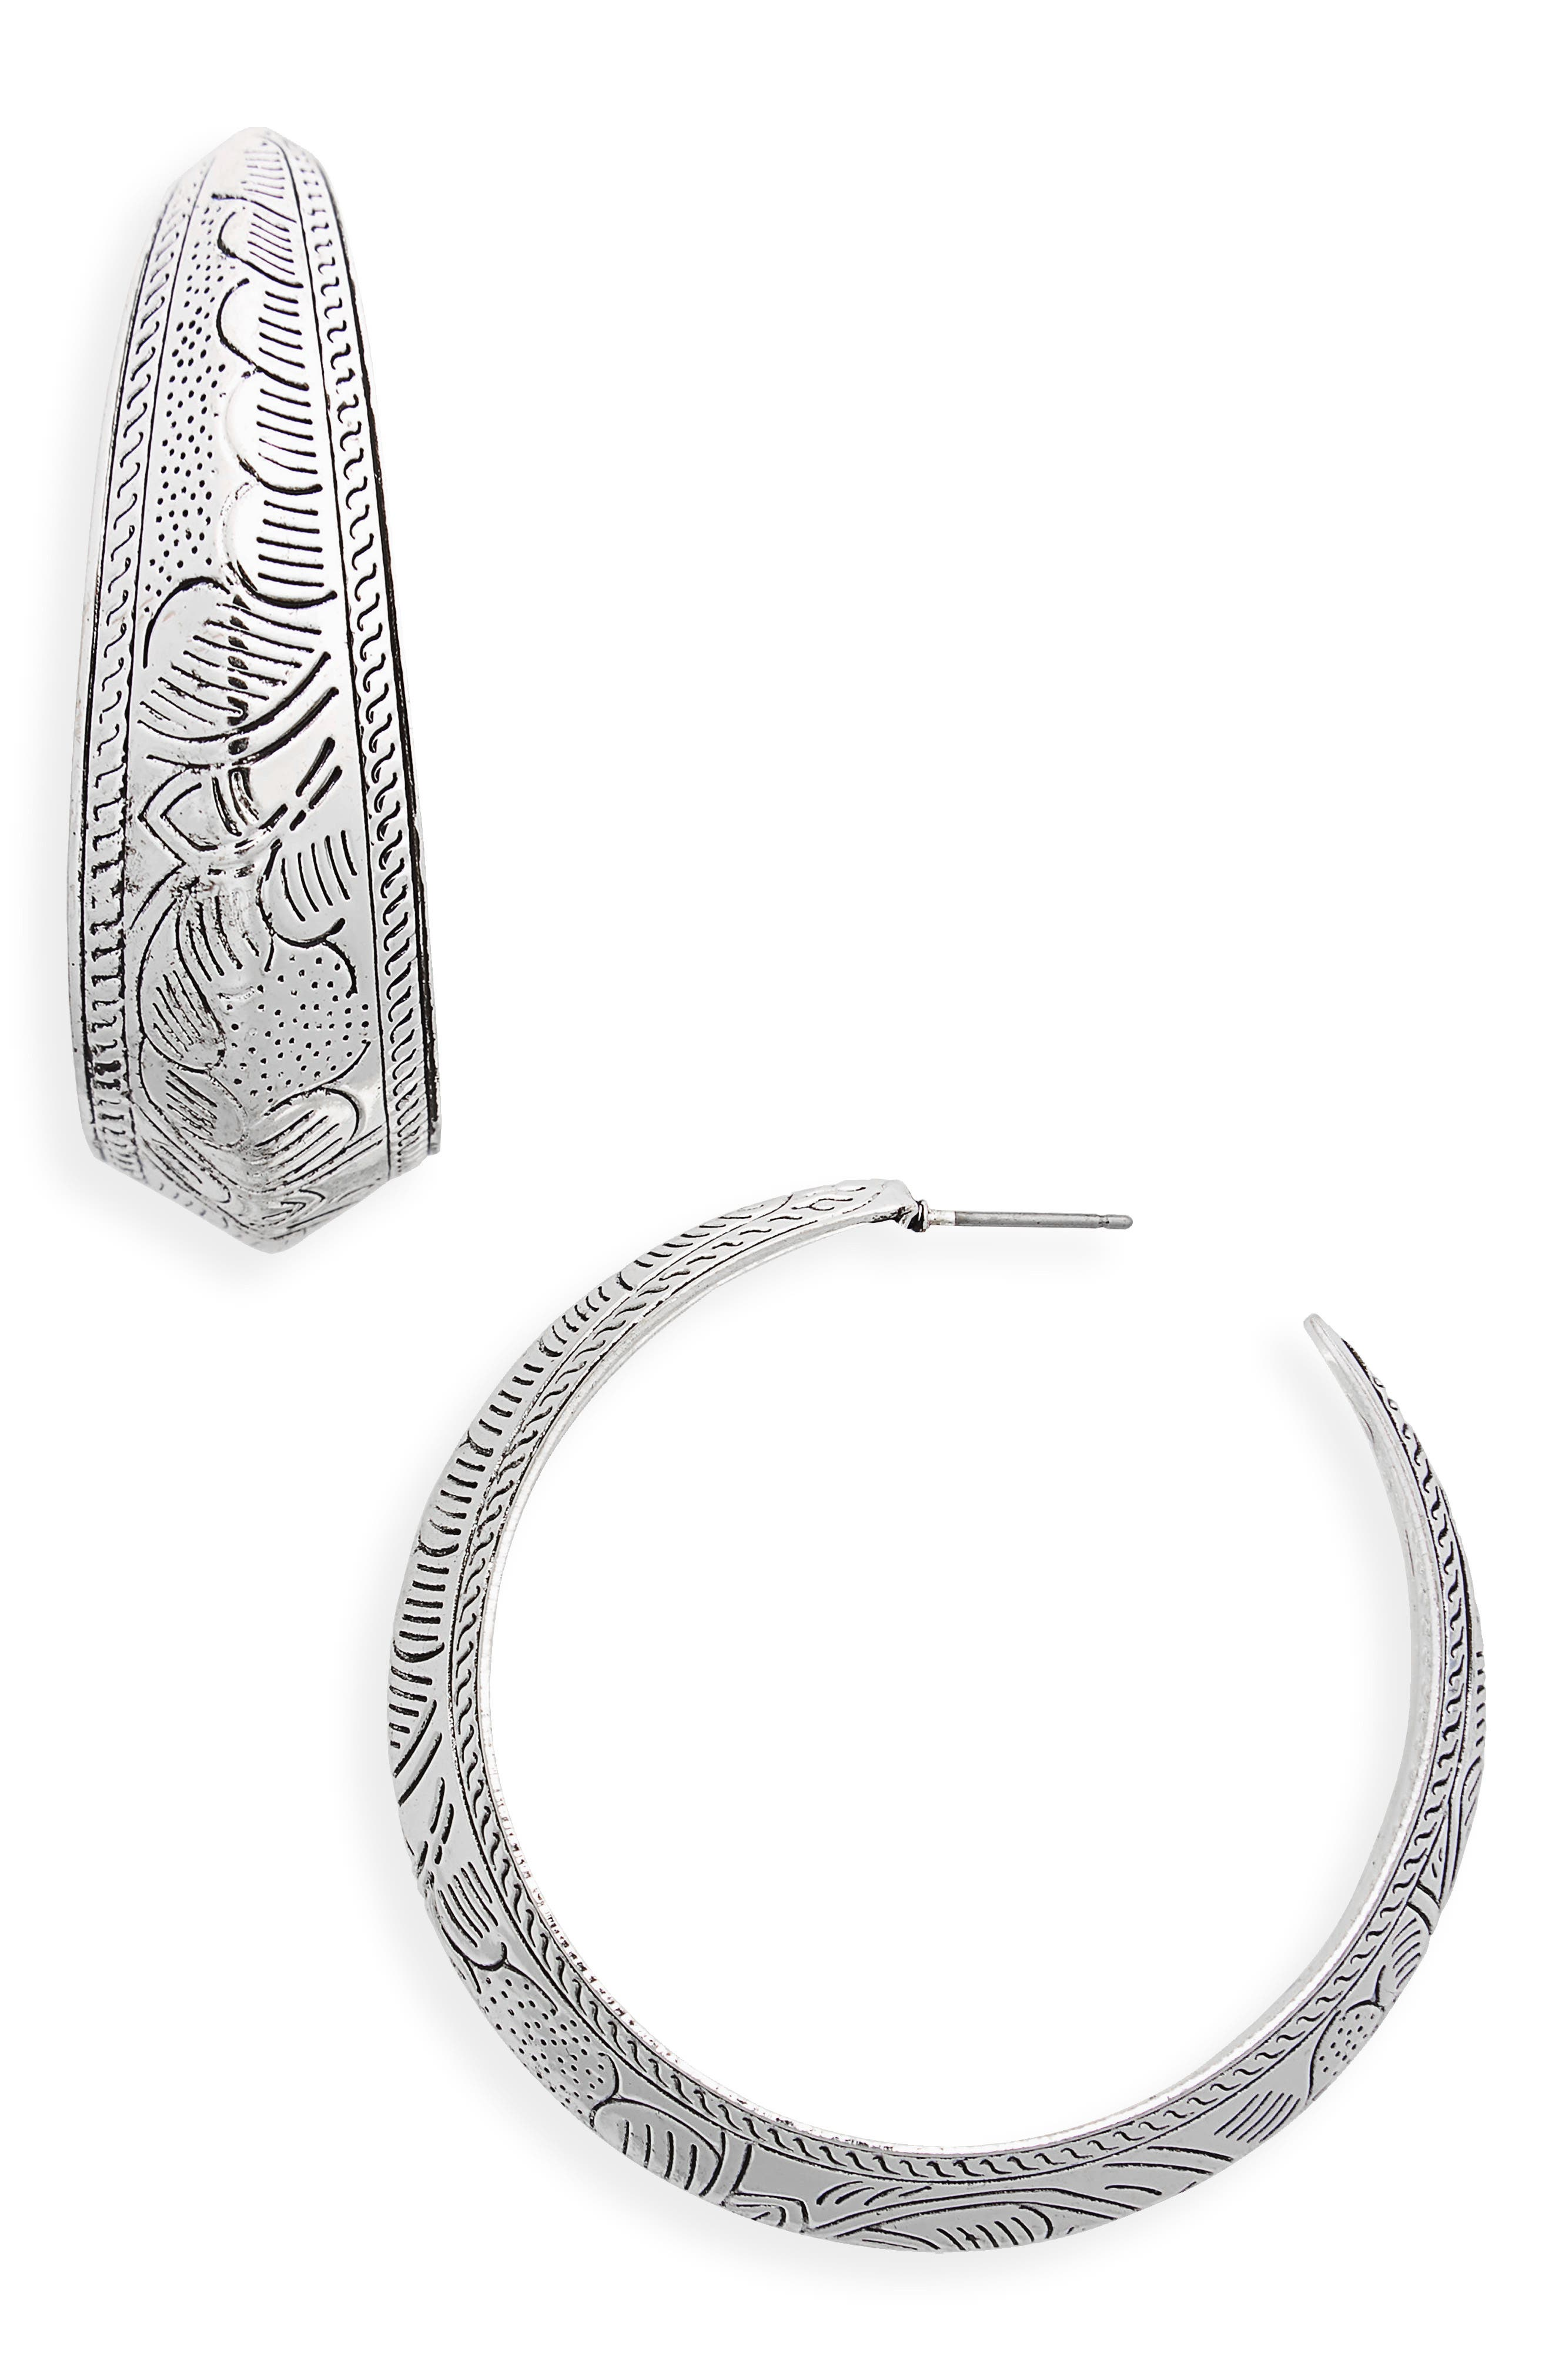 Etched Western Hoop Earrings,                             Main thumbnail 1, color,                             Silver